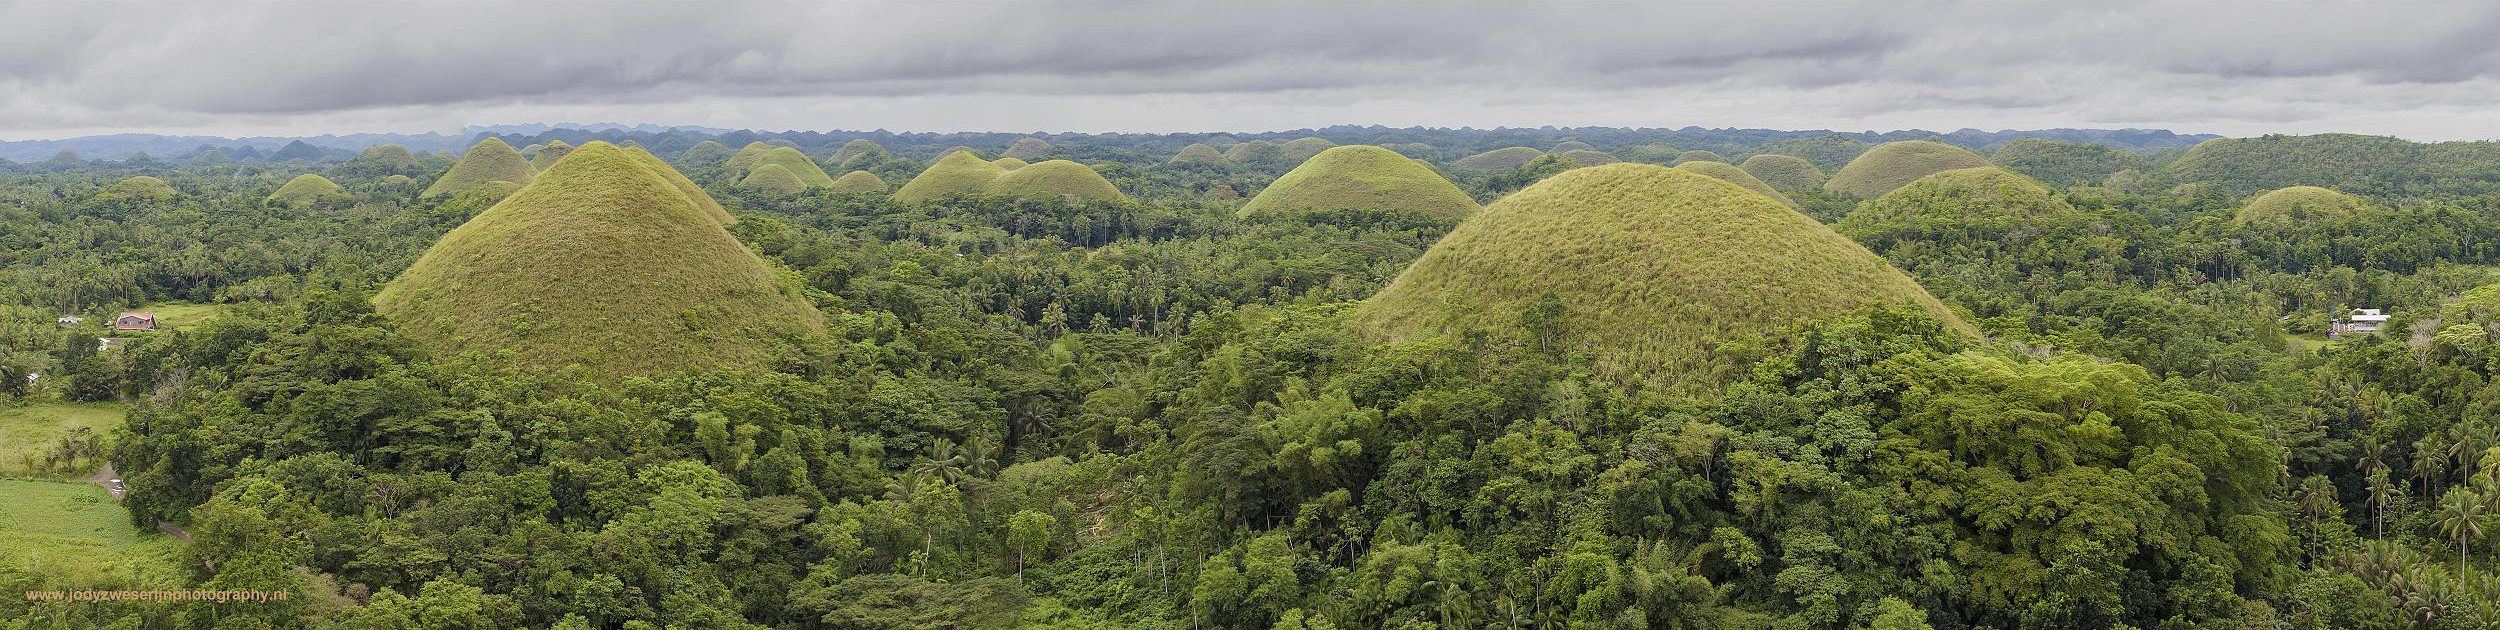 Chocolate Hills, Bohol, Filipijnen, 7-11-2017